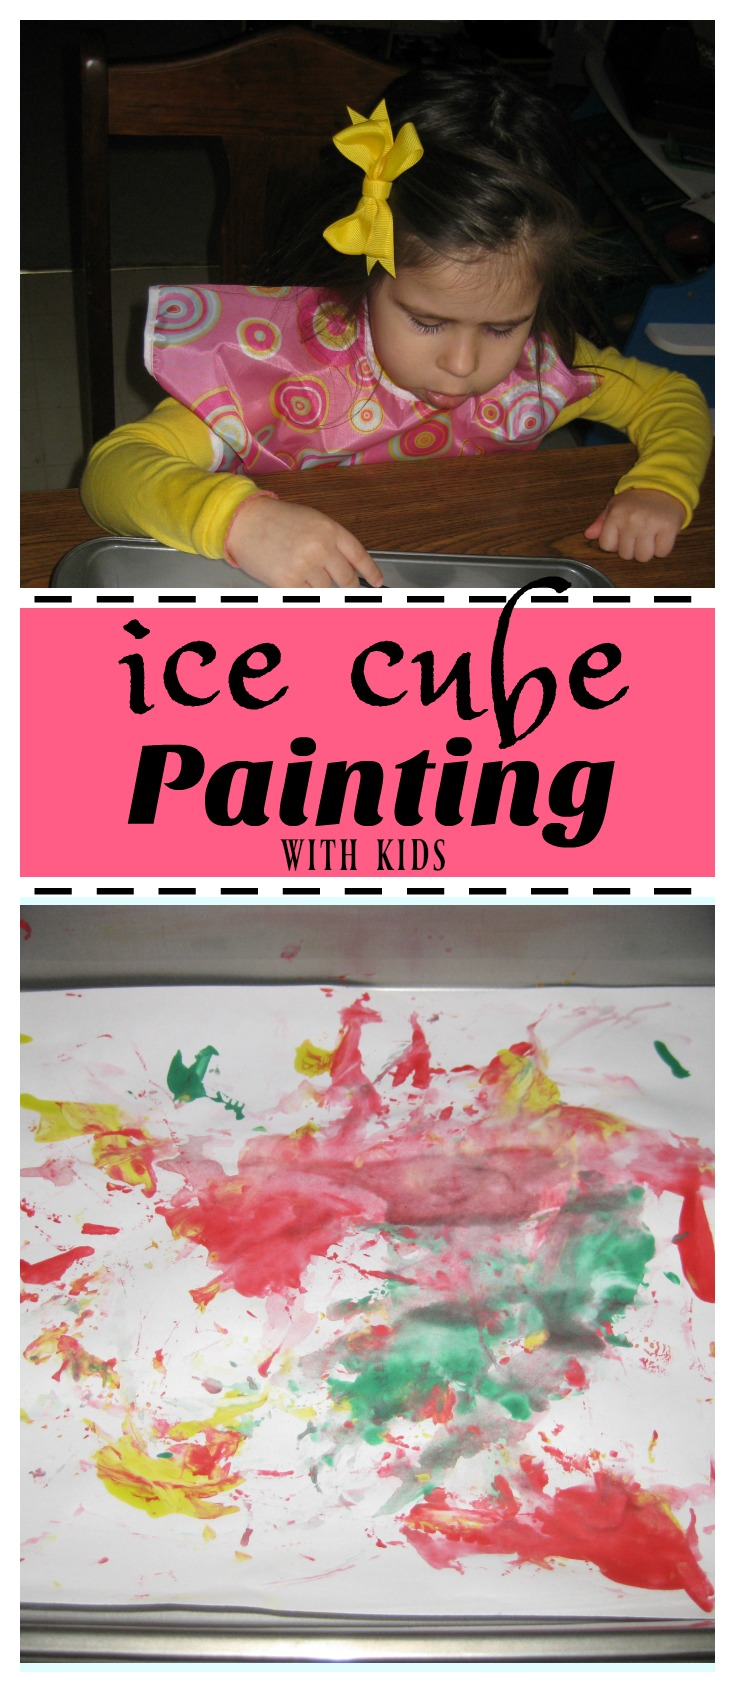 Ice Cube Painting with kids